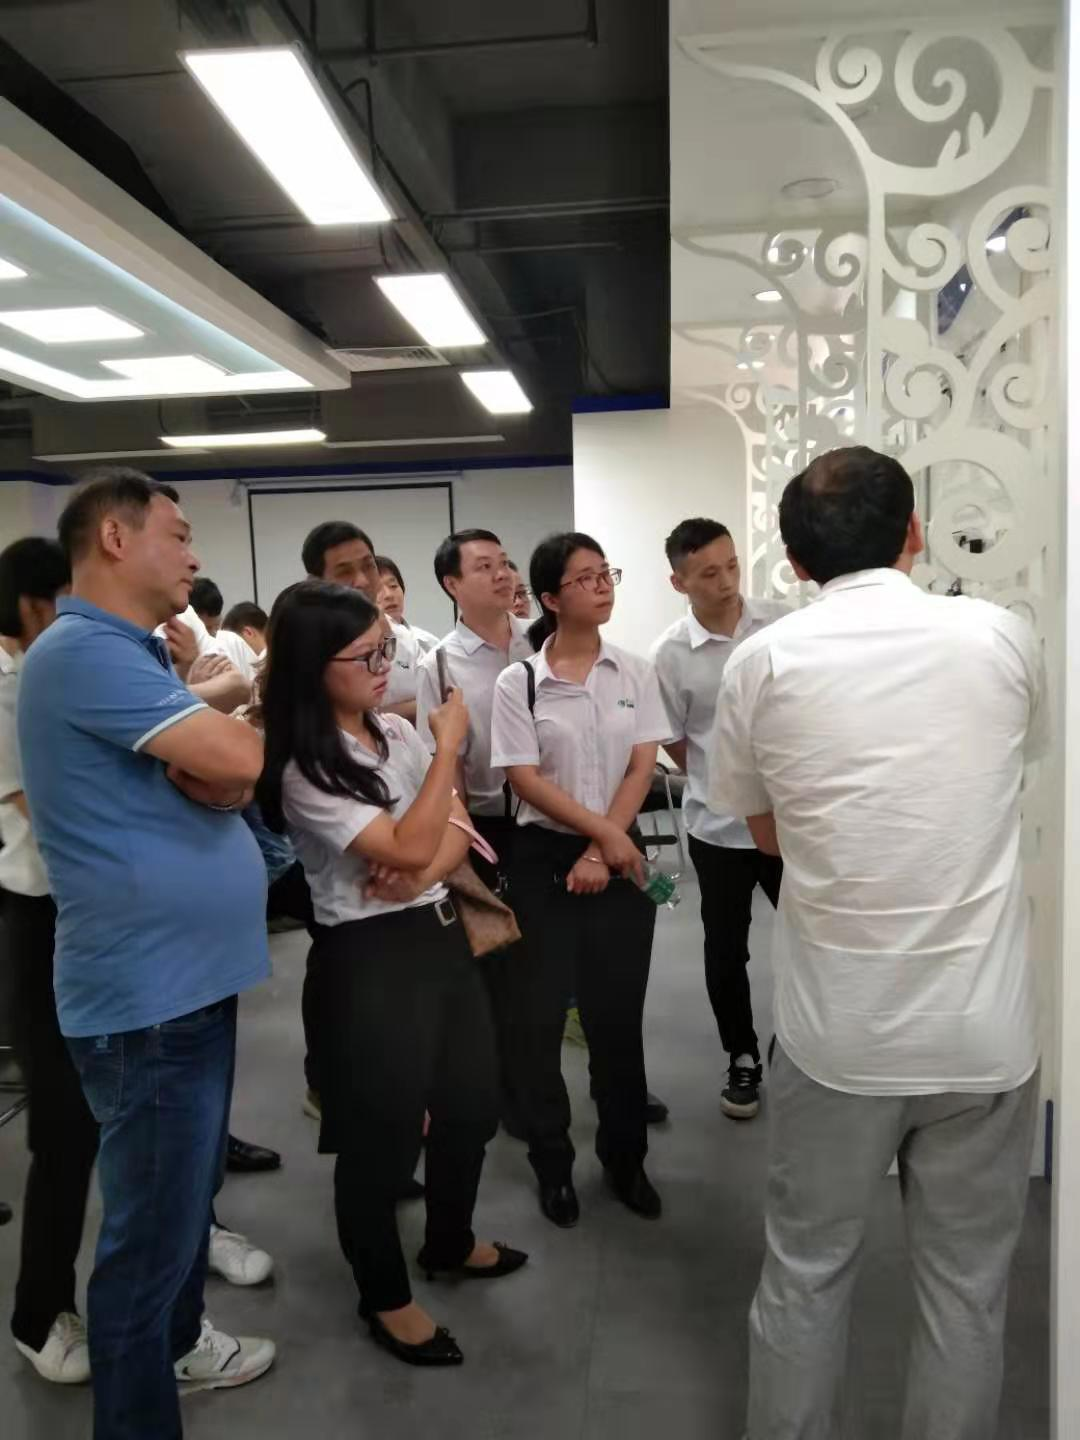 PNY-Tour And Visit To Foshan Eaglerise Electric Electronic Co, Ltd-6